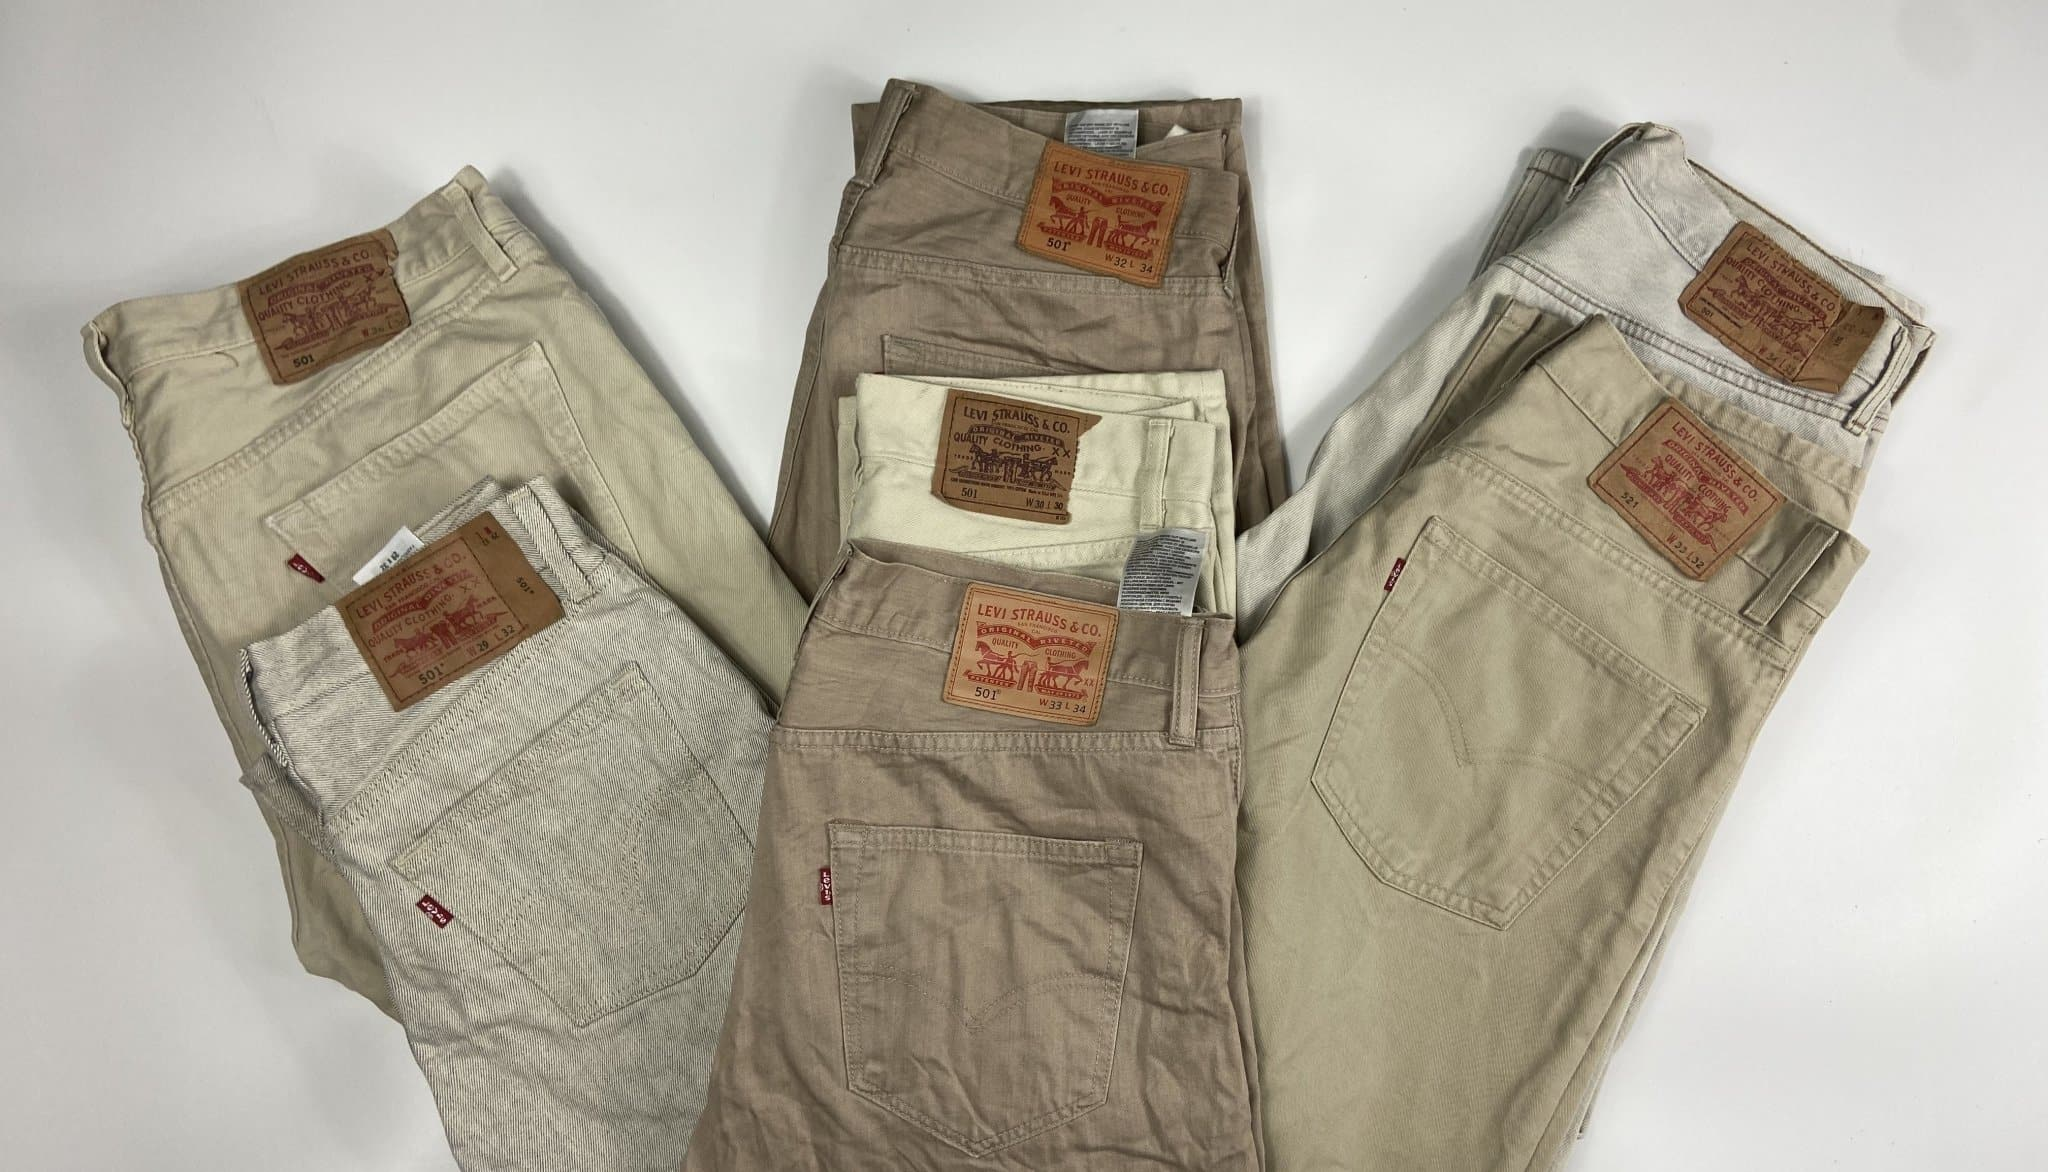 Vintage Levi's Classic Beige/Cream 501 Jeans W31 L36 (BE1) - Discounted Deals UK